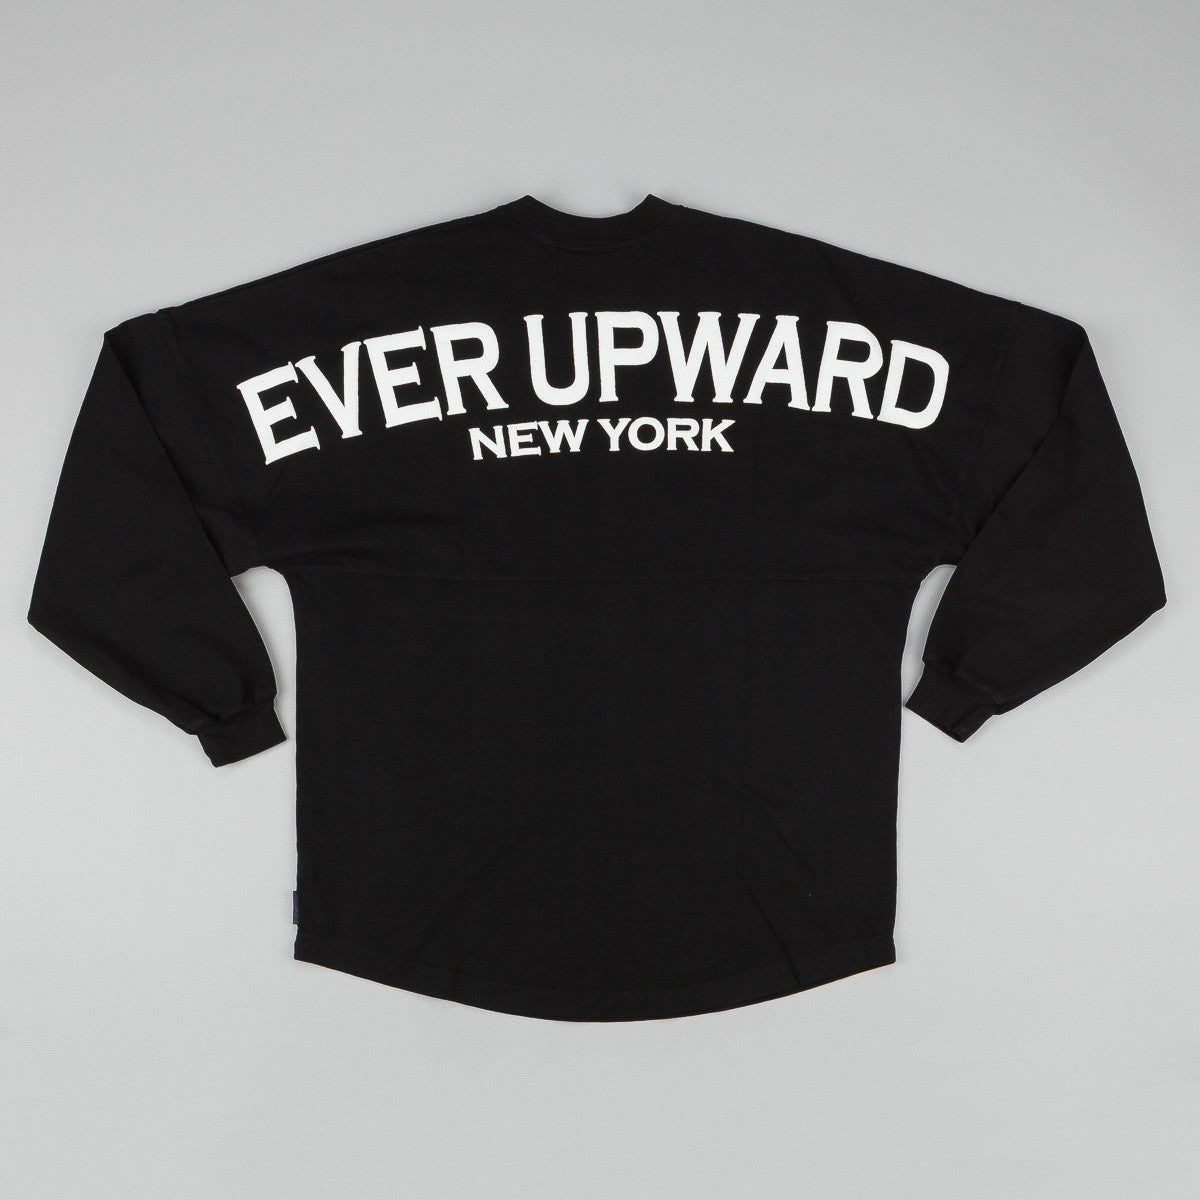 Belief Upward Football Jersey - Black